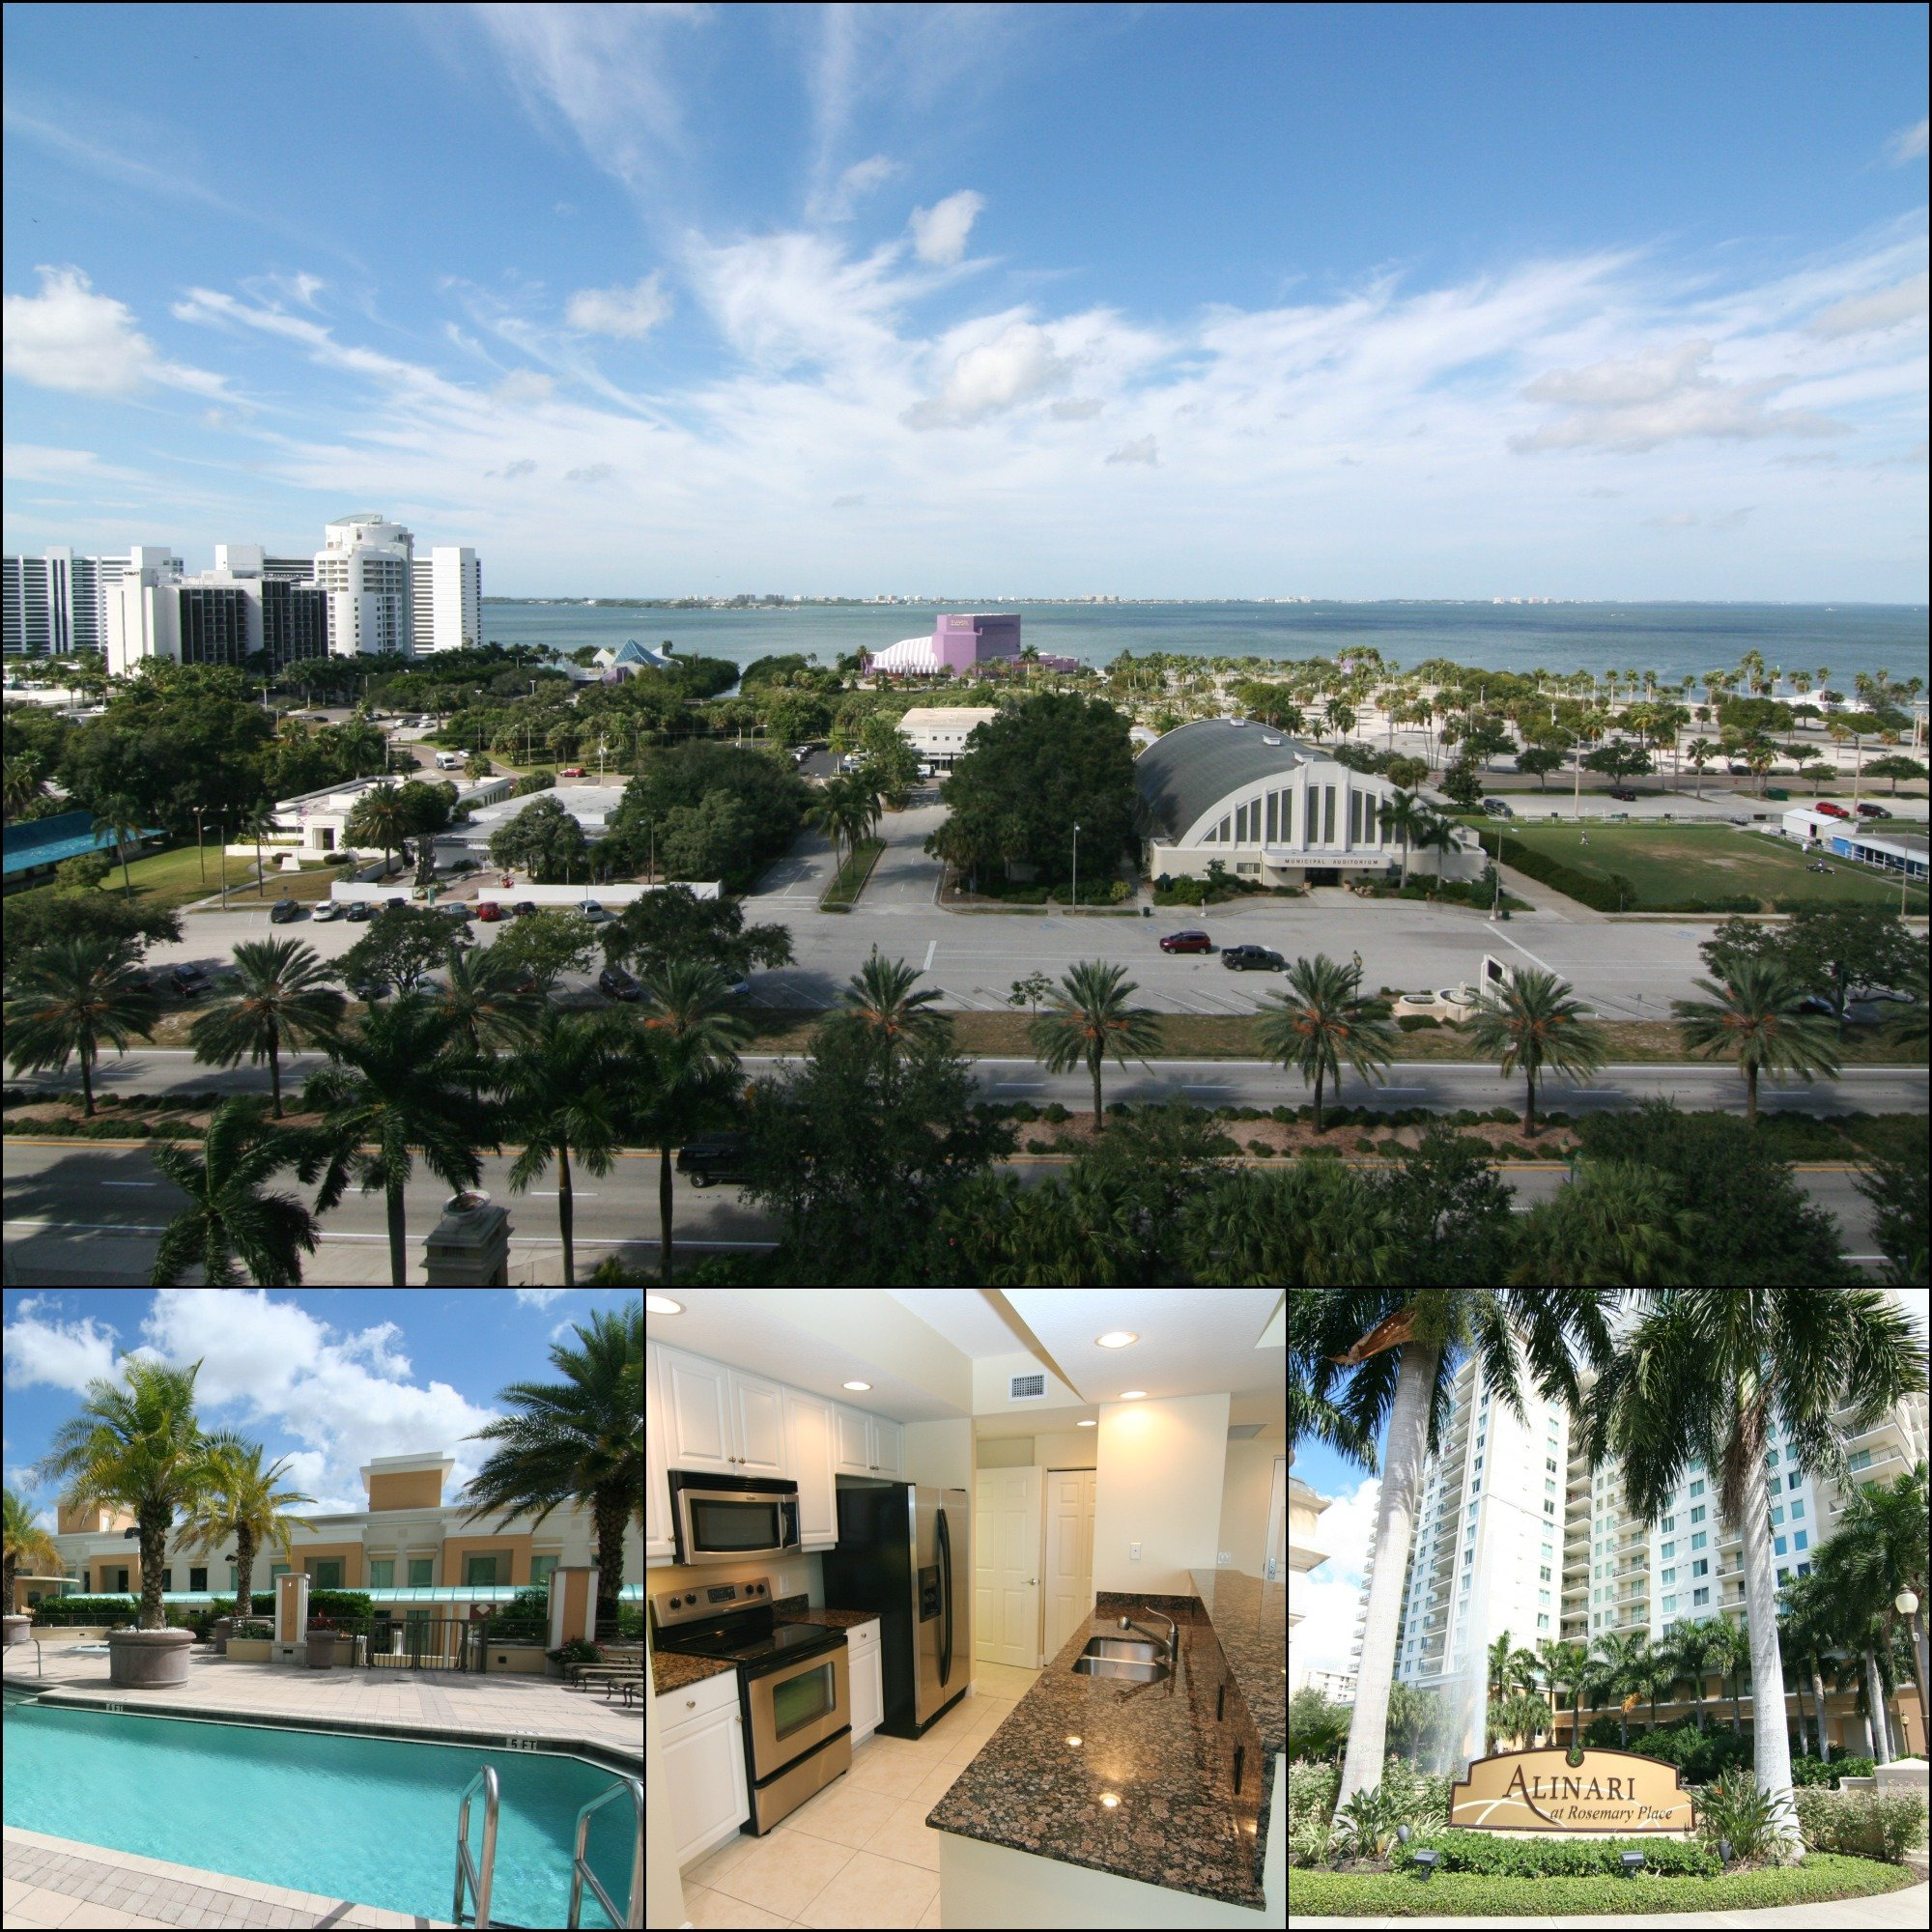 Own a rental property in Alinari that you need rented? Contact Lindsay Leasing, a Sarasota property management company.